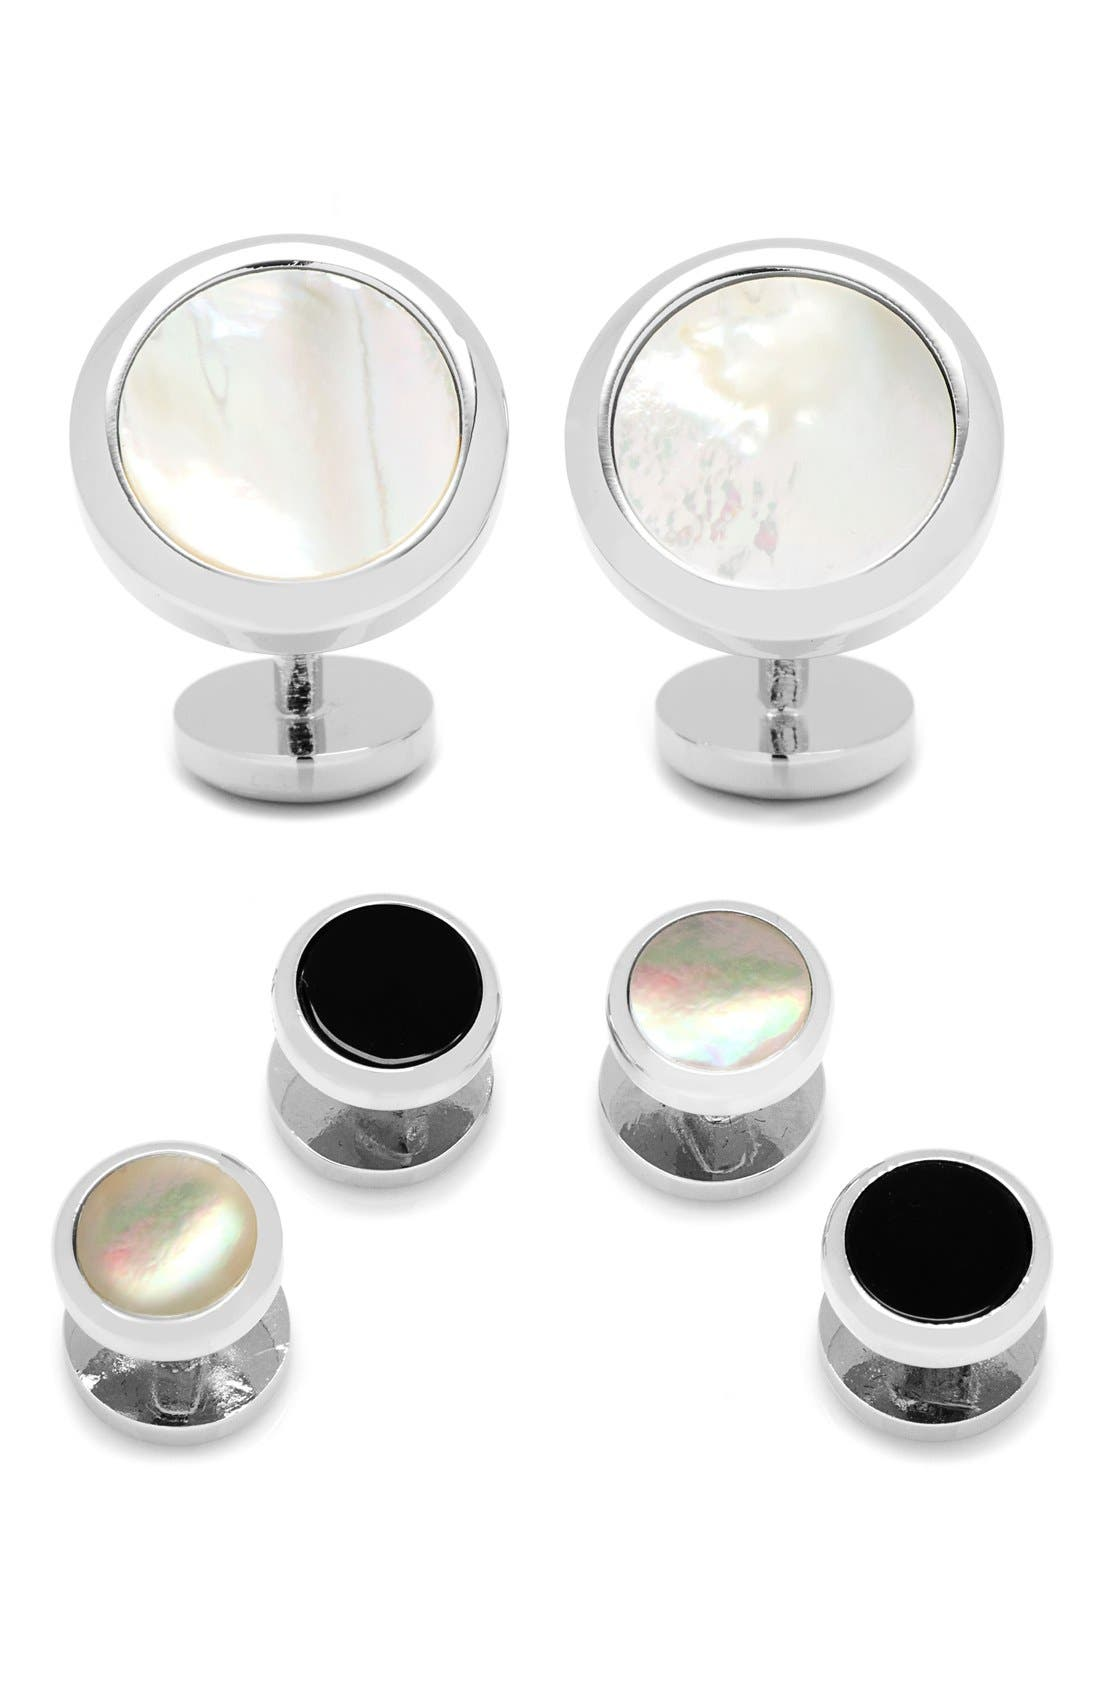 Alternate Image 1 Selected - Ox and Bull Trading Co. Mother-of-Pearl Cuff Links & Shirt Stud Set